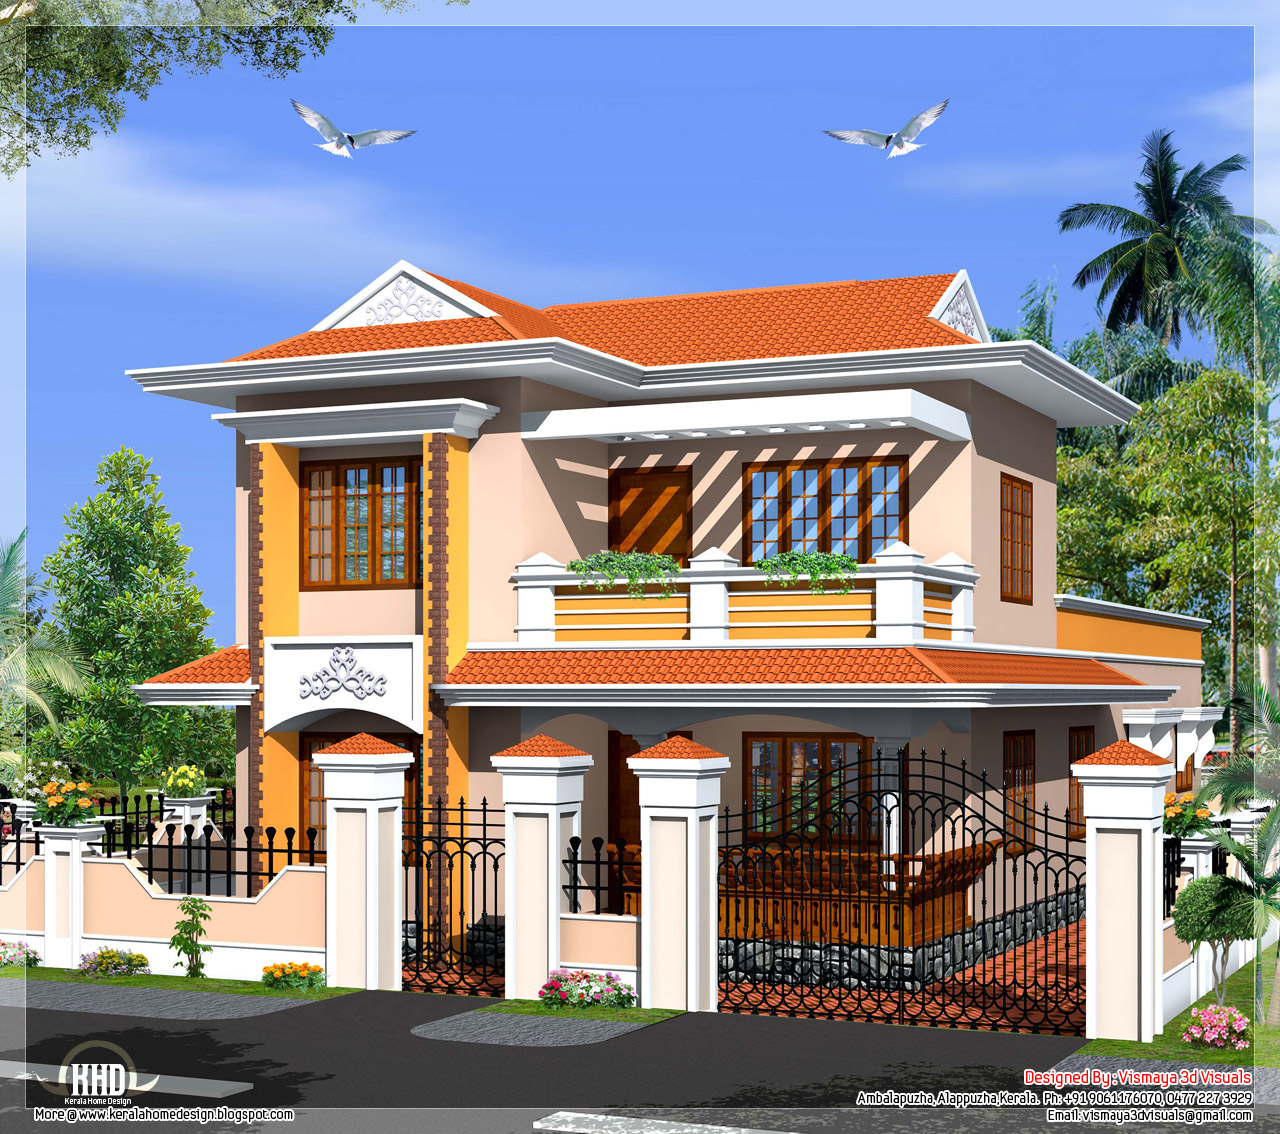 Kerala model villa in 2110 in square feet kerala home for Indian house models for construction